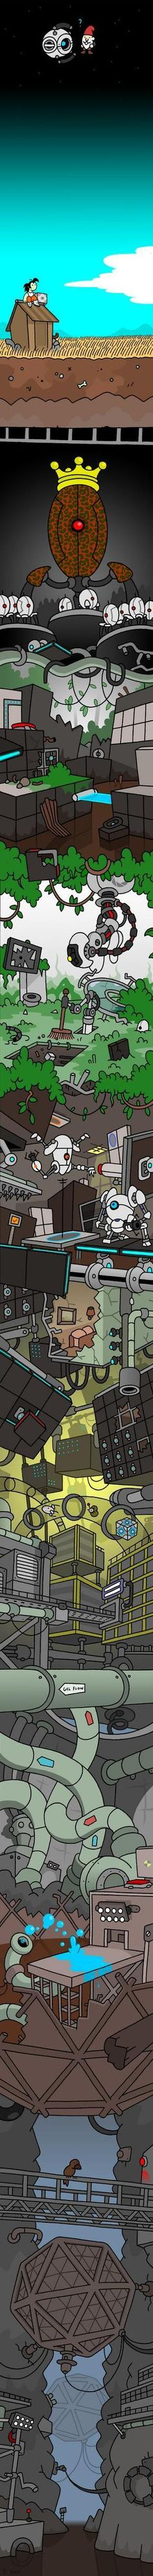 Portal 2: From the sky to the core. No pun intended. (Except maybe a little.)